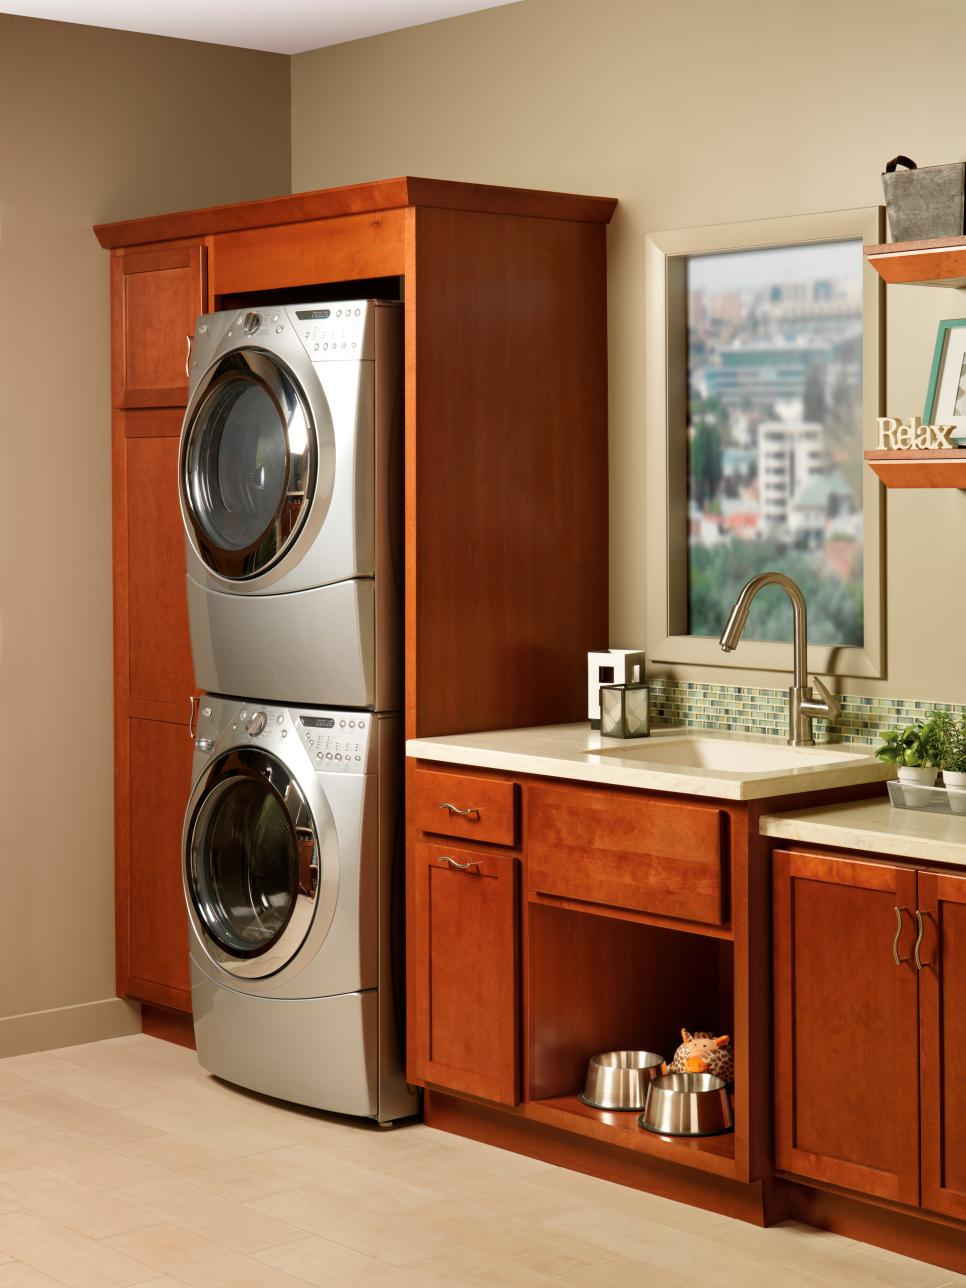 Laundry Room Design Ideas HGTV - Utility room ideas